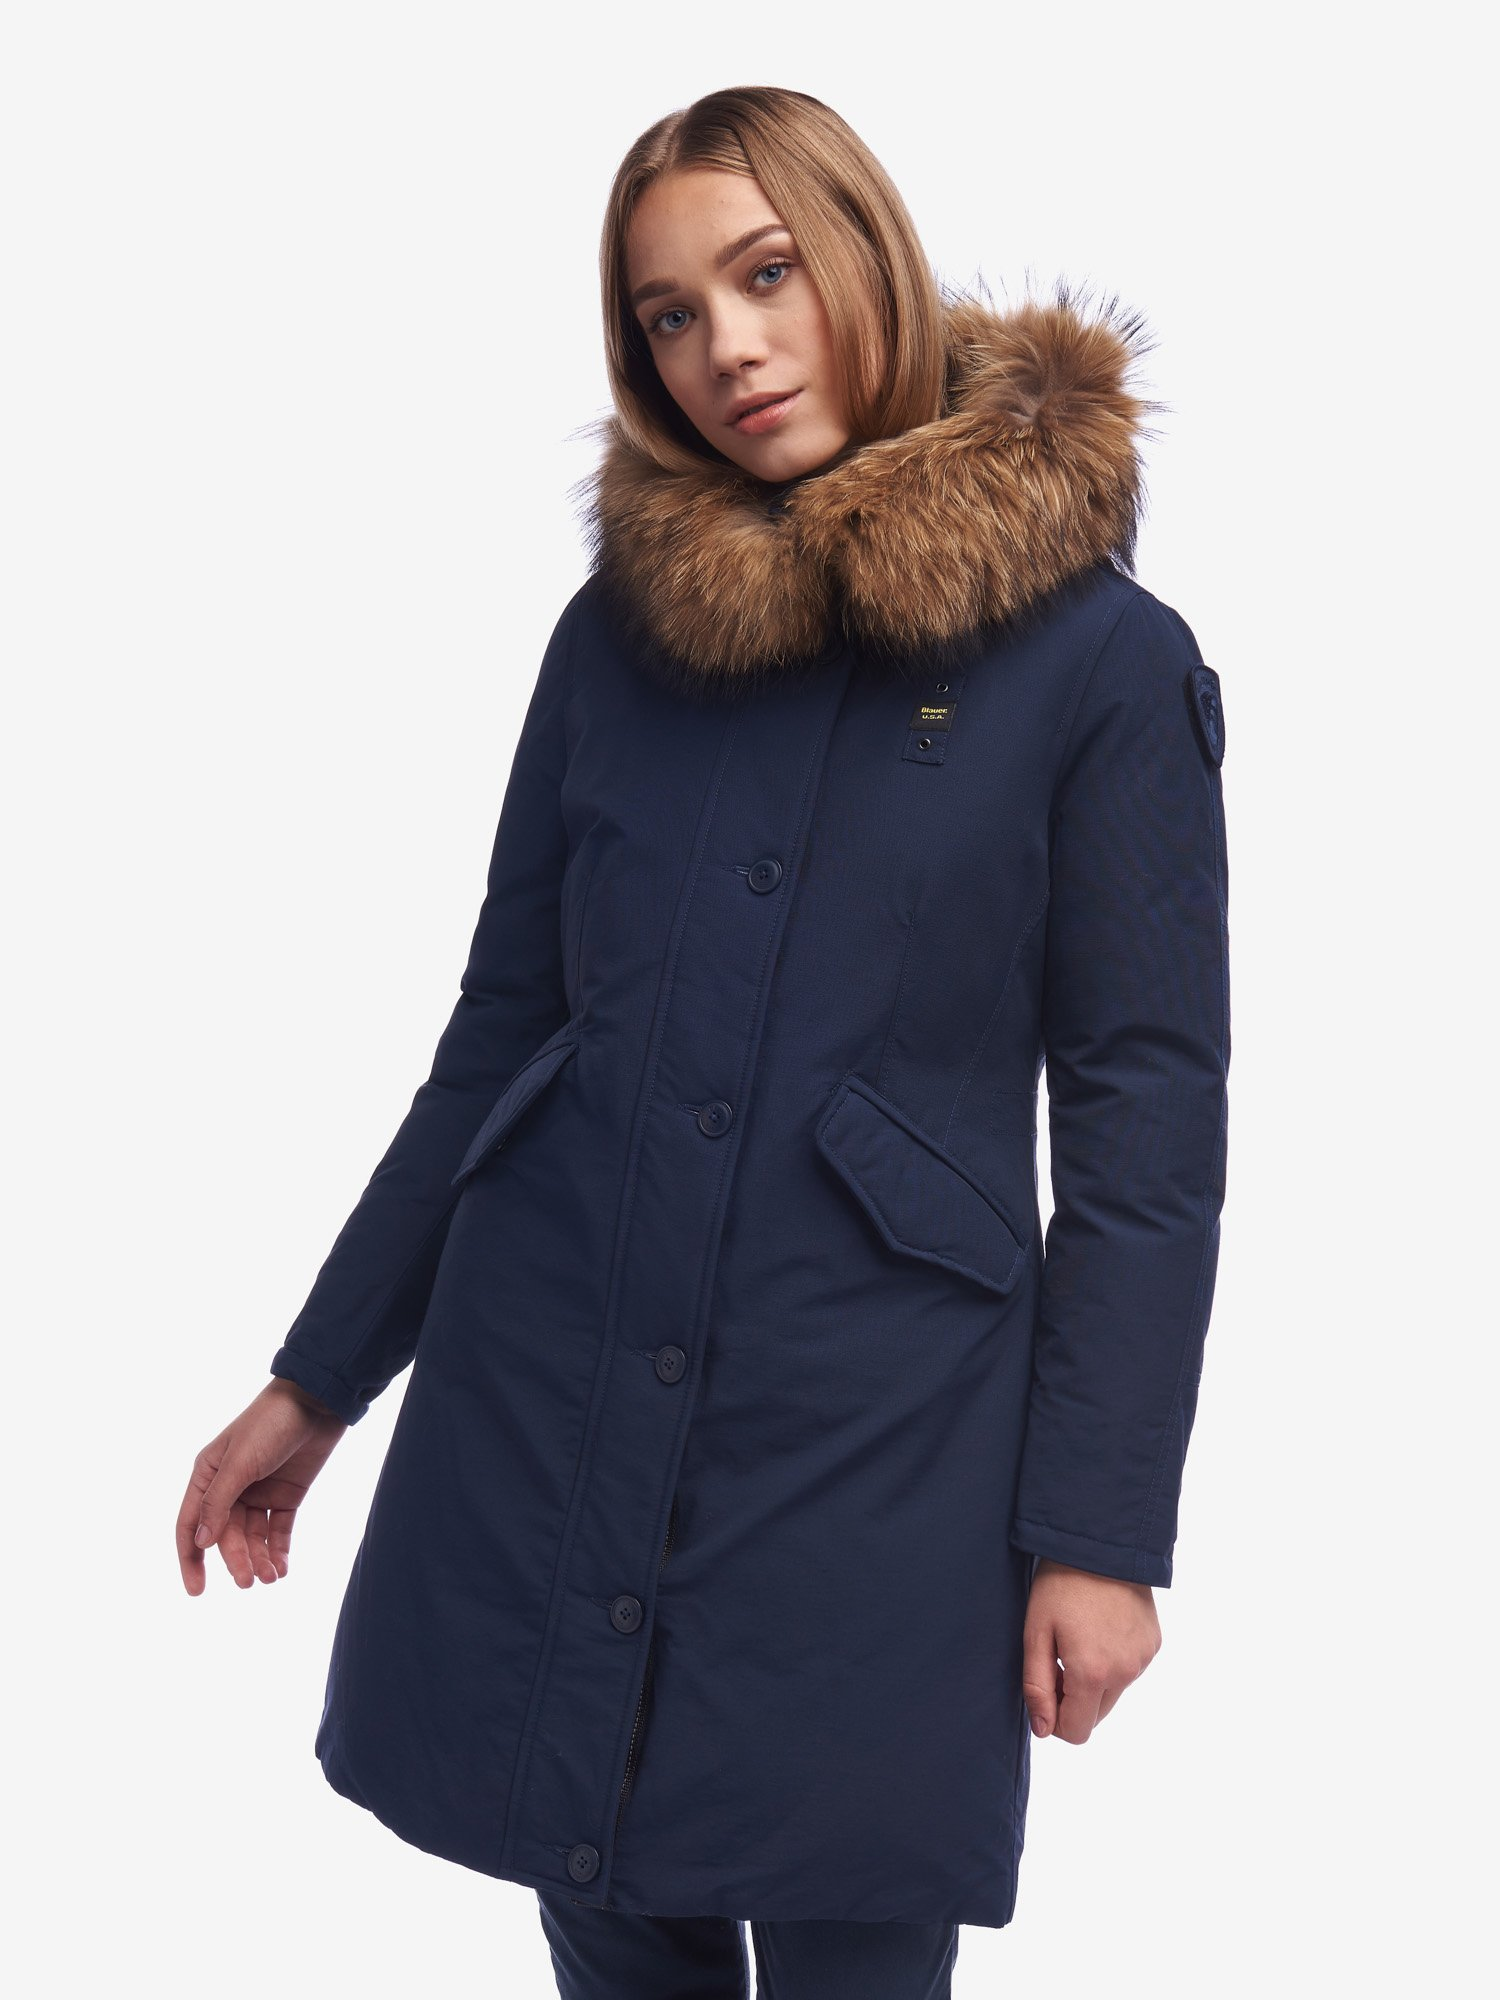 WOODS PARKA IN LIGHT TASLAN - Blauer